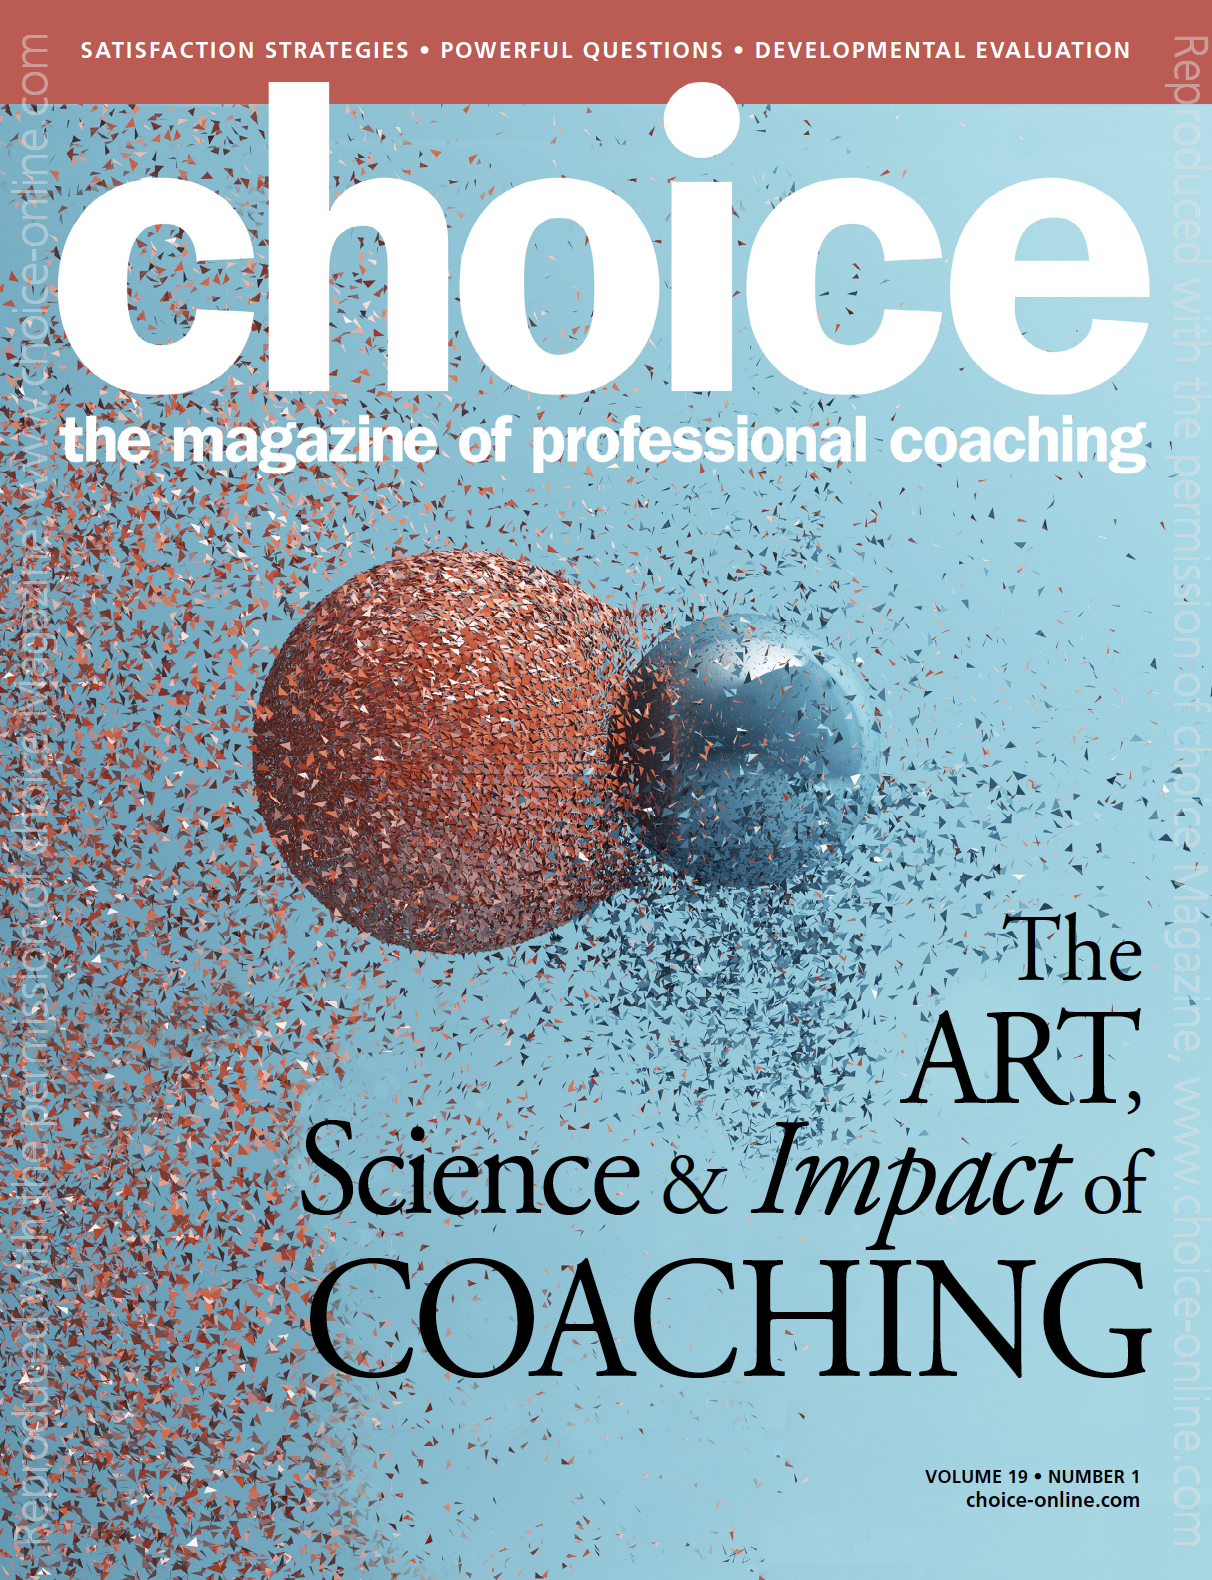 The Art, Science, and Impact of Coaching article - Choice Magazine